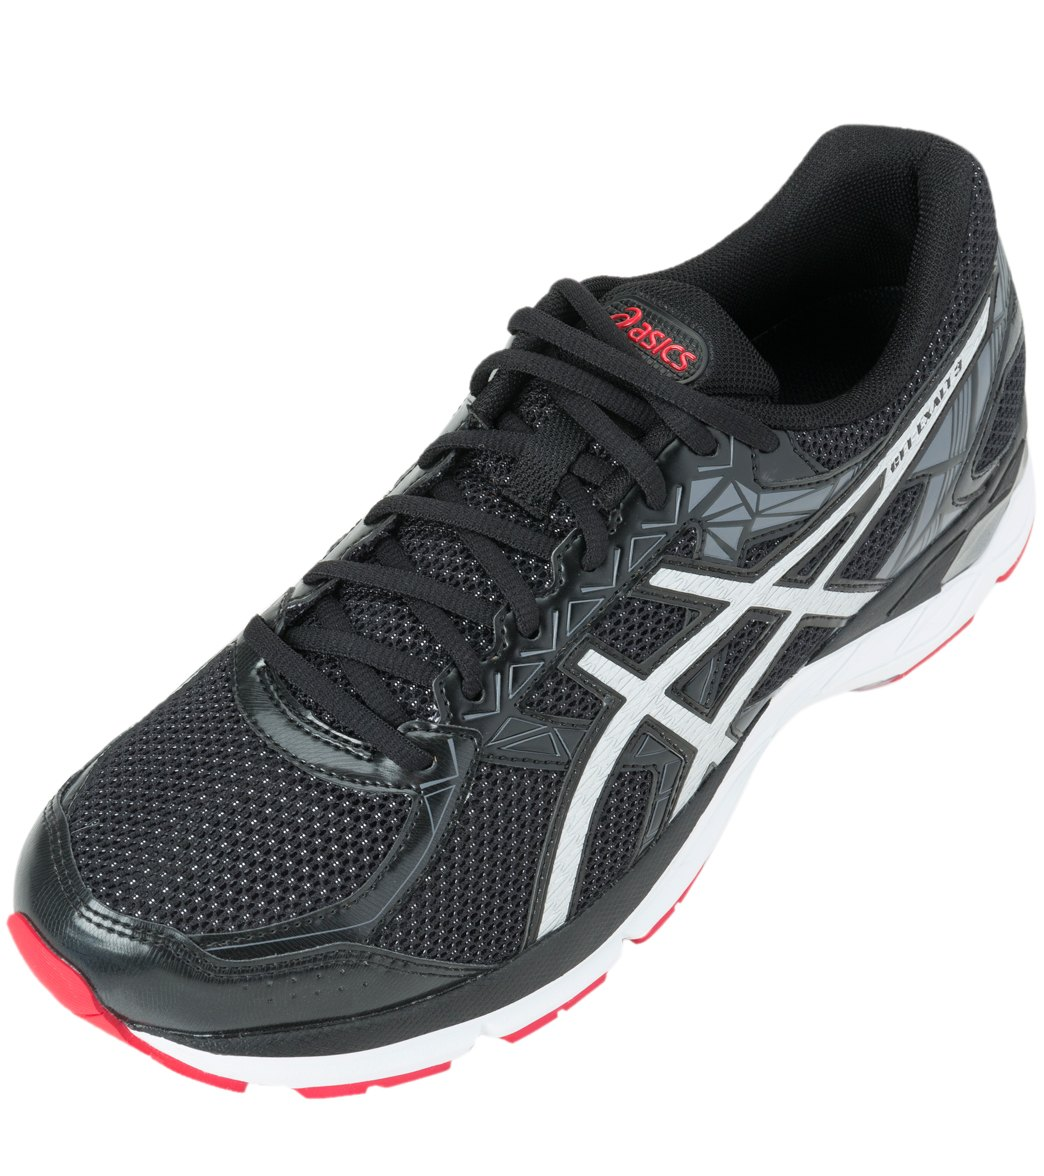 1dc1705f4a26 Asics Men s GEL-Exalt 3 Running Shoes at SwimOutlet.com - Free Shipping